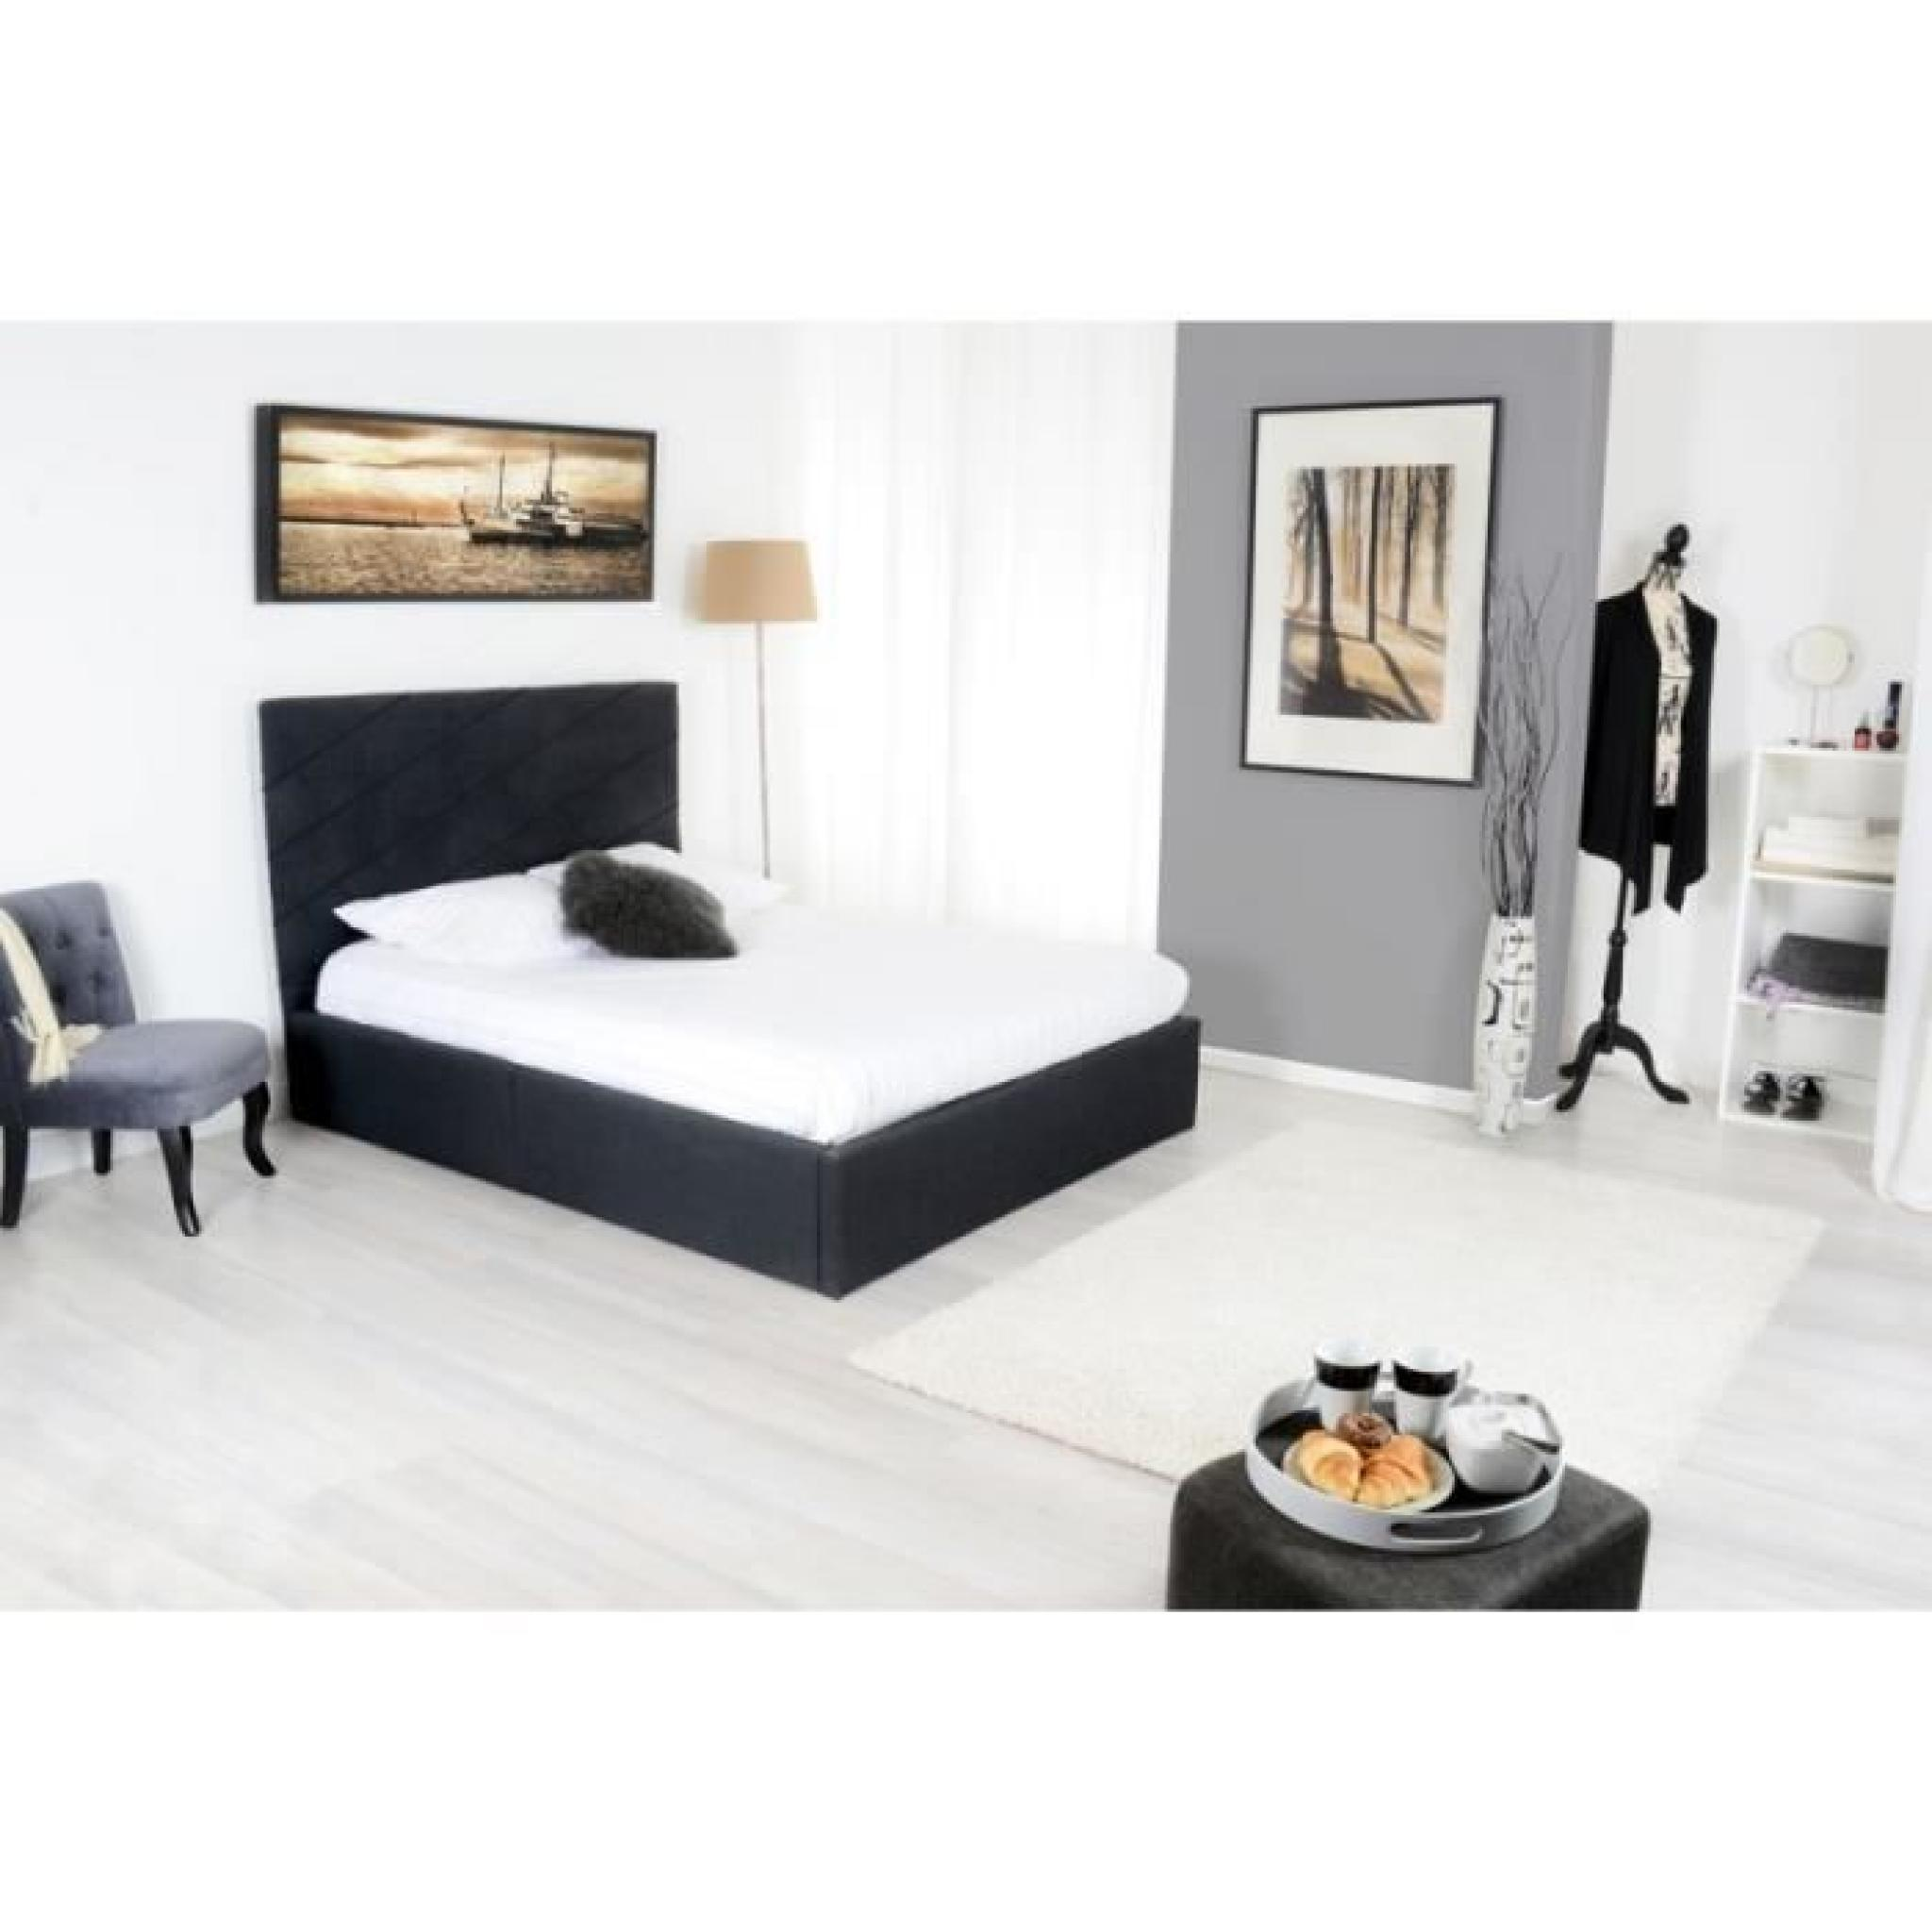 diag lit coffre adulte 160x200 cm sommier gris achat vente lit pas cher couleur et. Black Bedroom Furniture Sets. Home Design Ideas